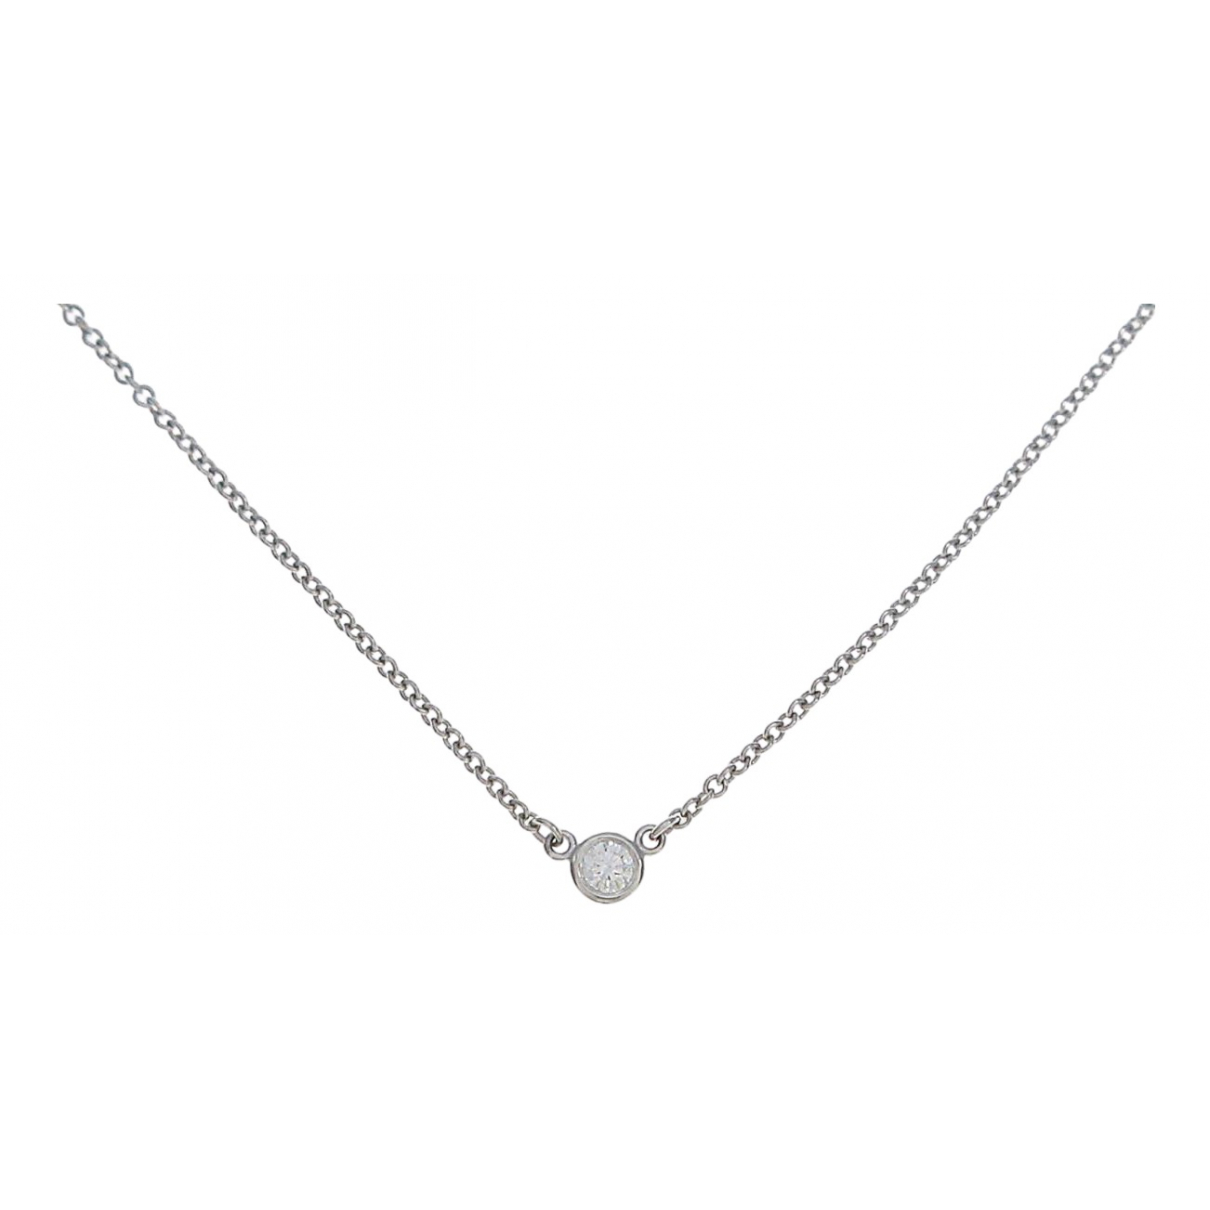 Collar Elsa Peretti  de Platino Tiffany & Co